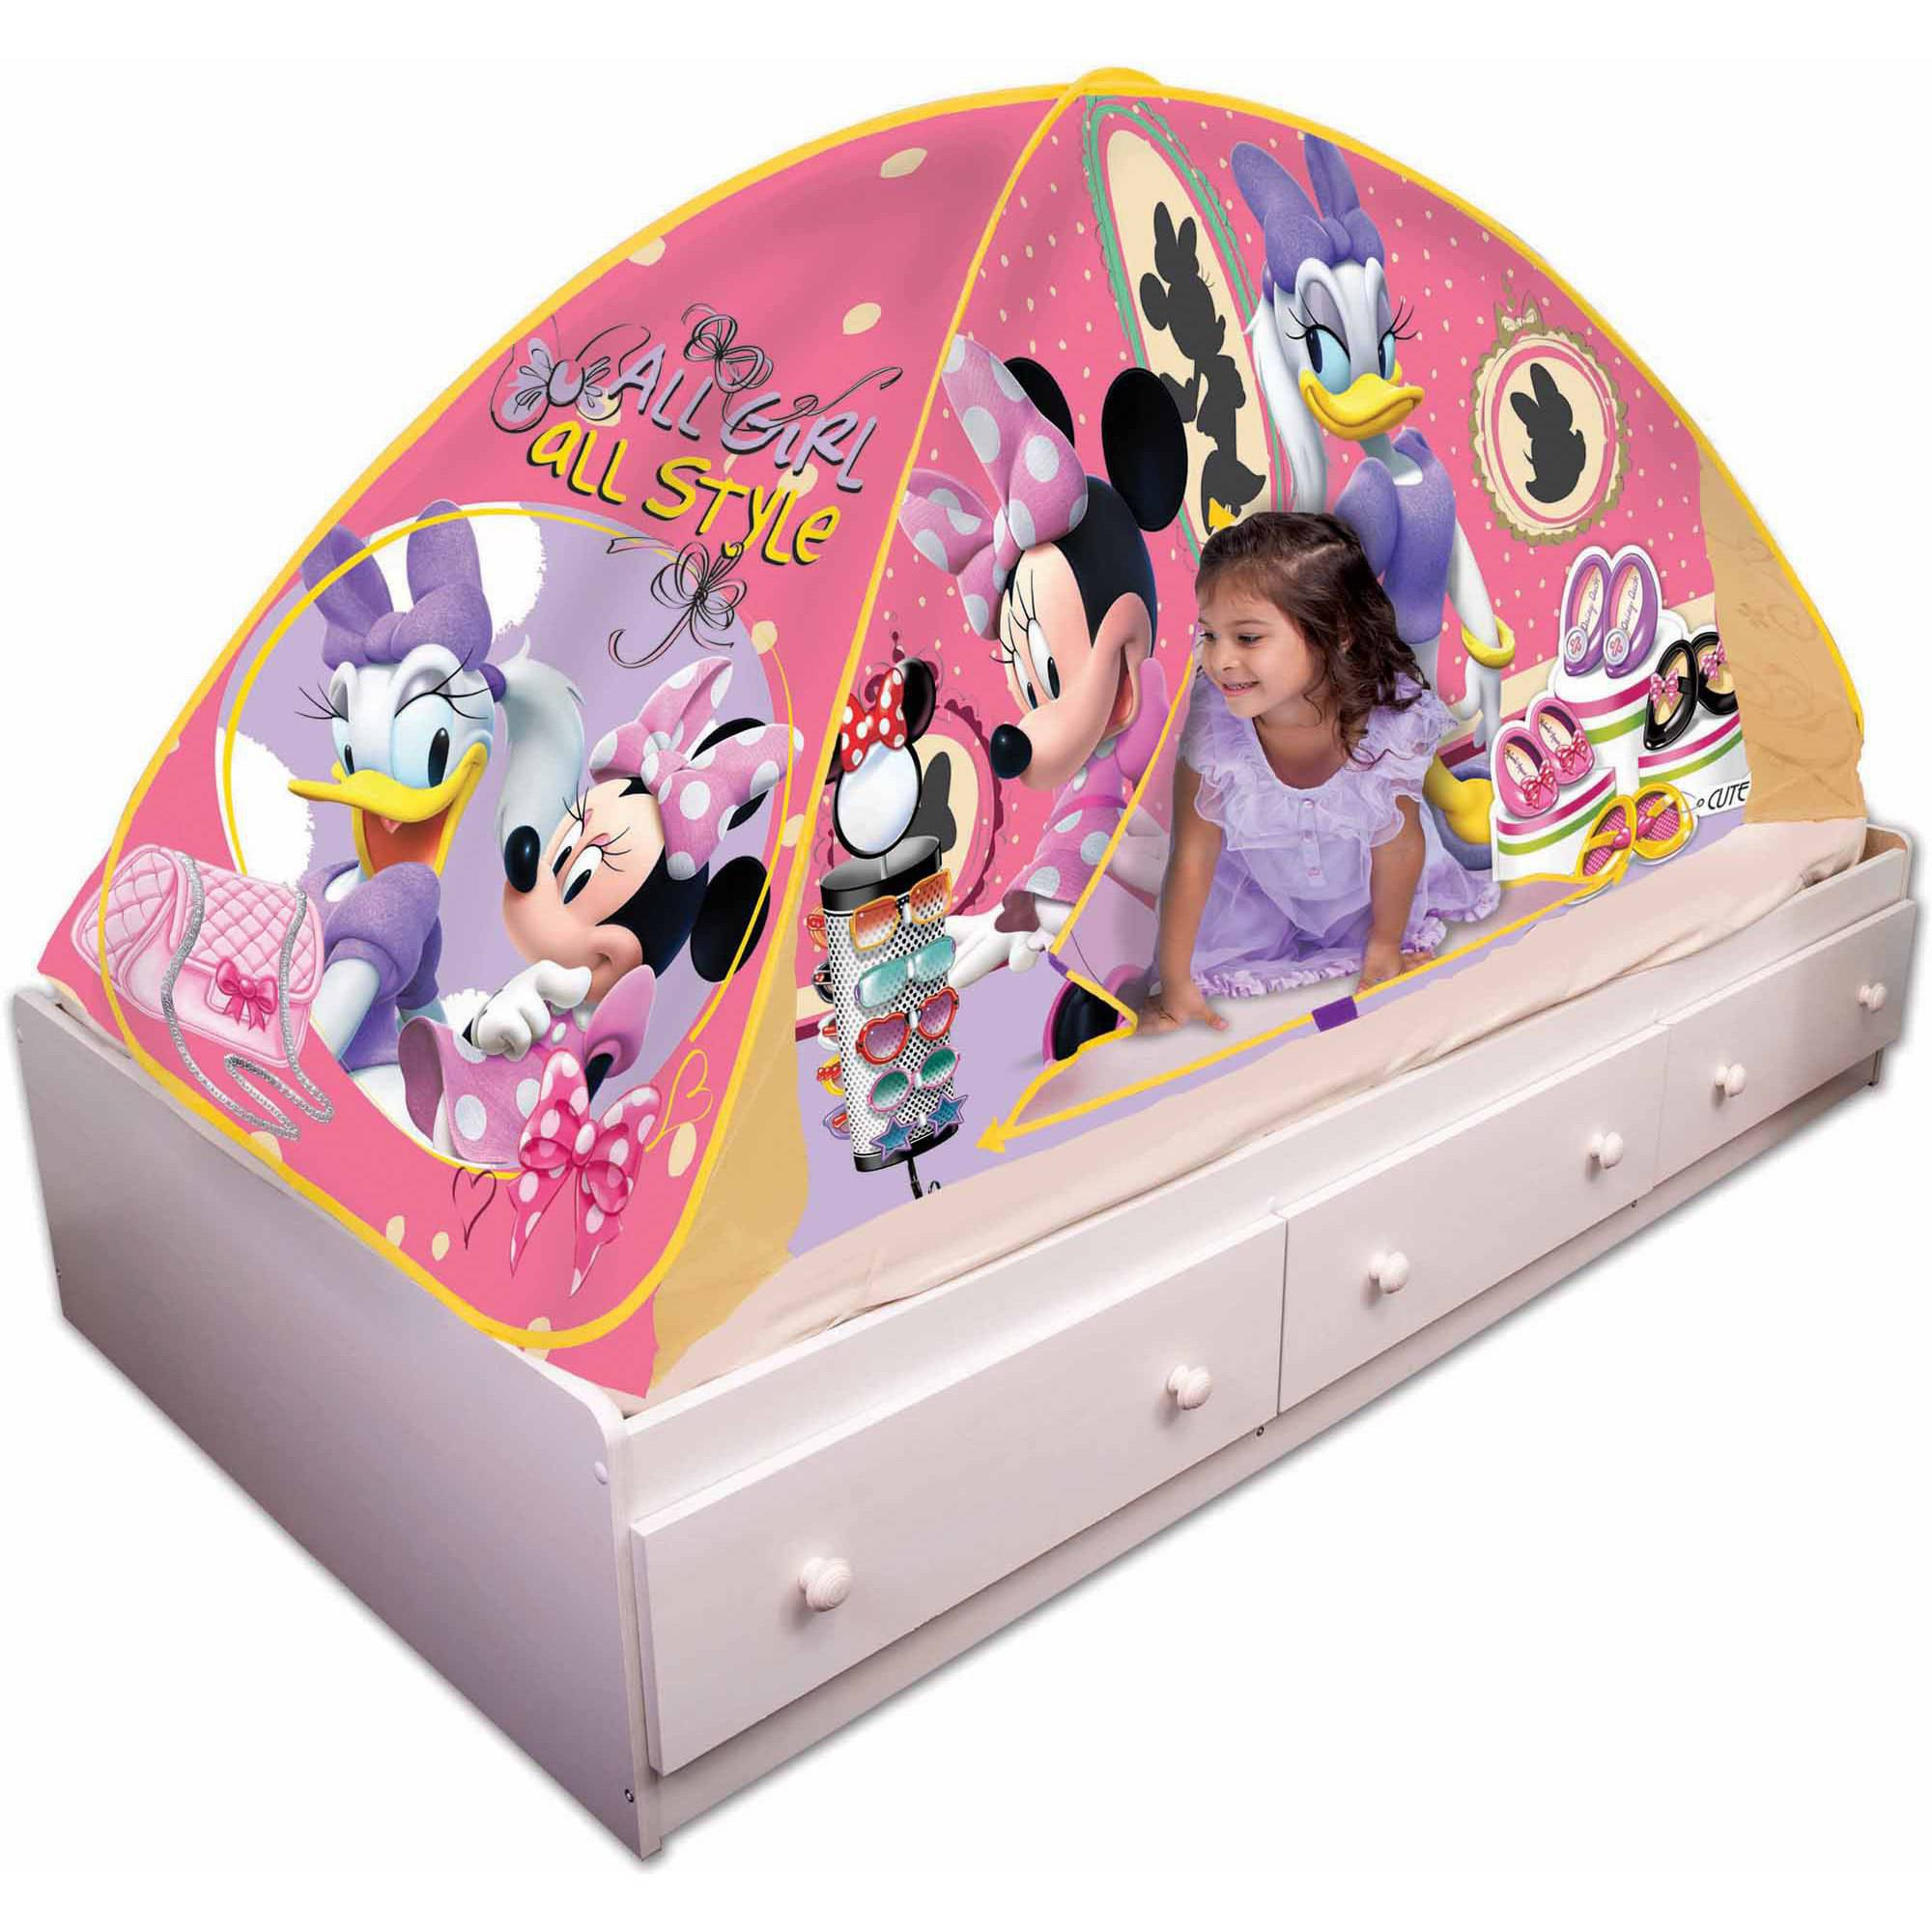 Playhut Disney Minnie Mouse 2-in-1 Tent  sc 1 st  Walmart & Playhut Disney Minnie Mouse 2-in-1 Tent - Walmart.com